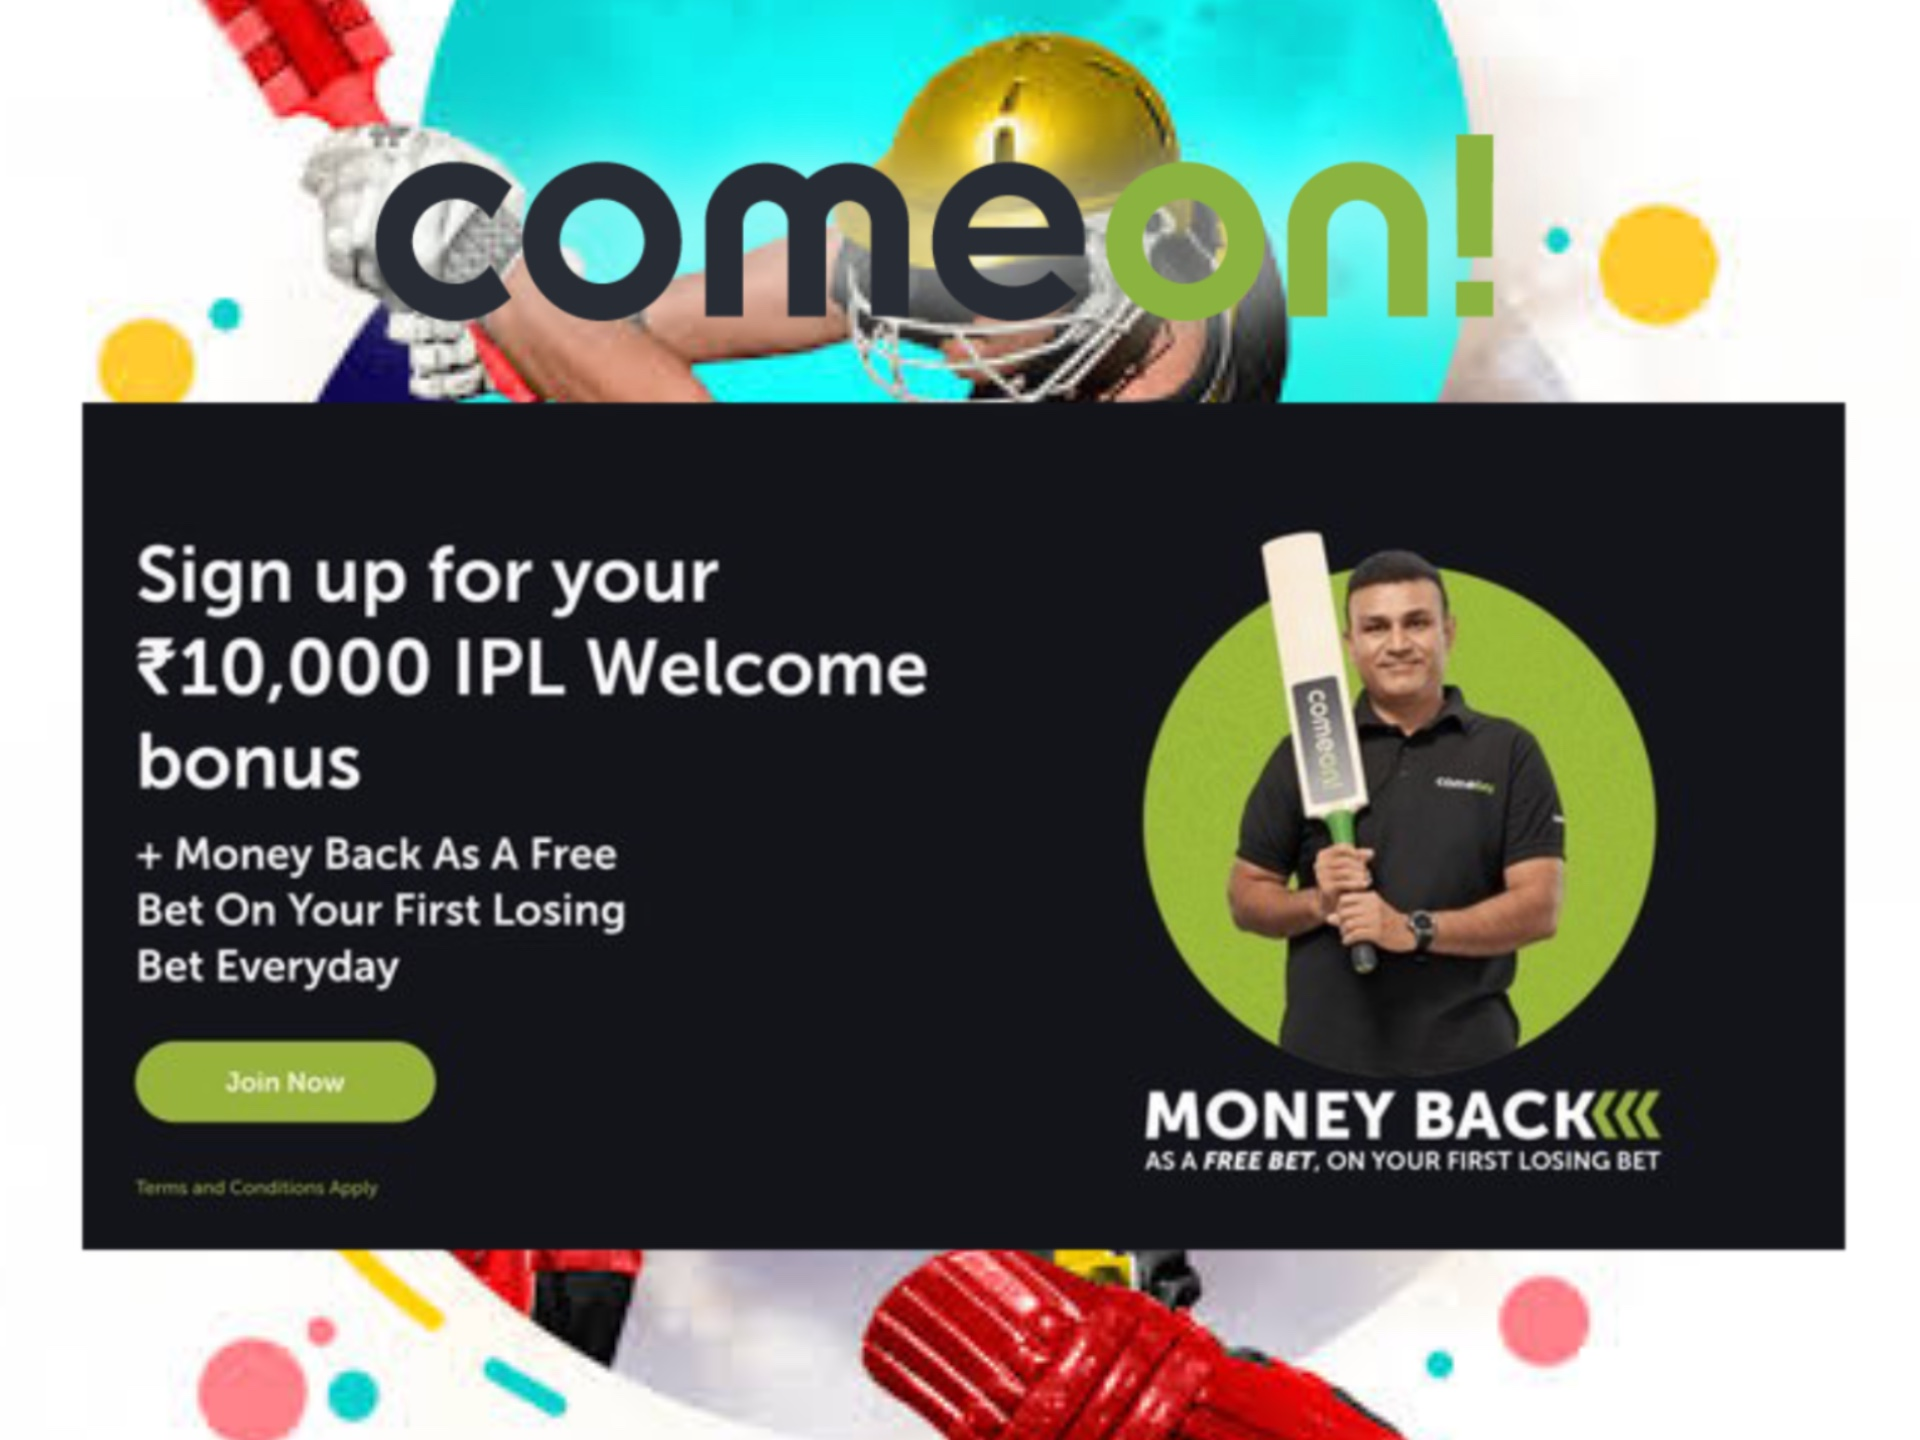 Comeon offers one of the biggest welcome bonuses on IPL betting, so register here.